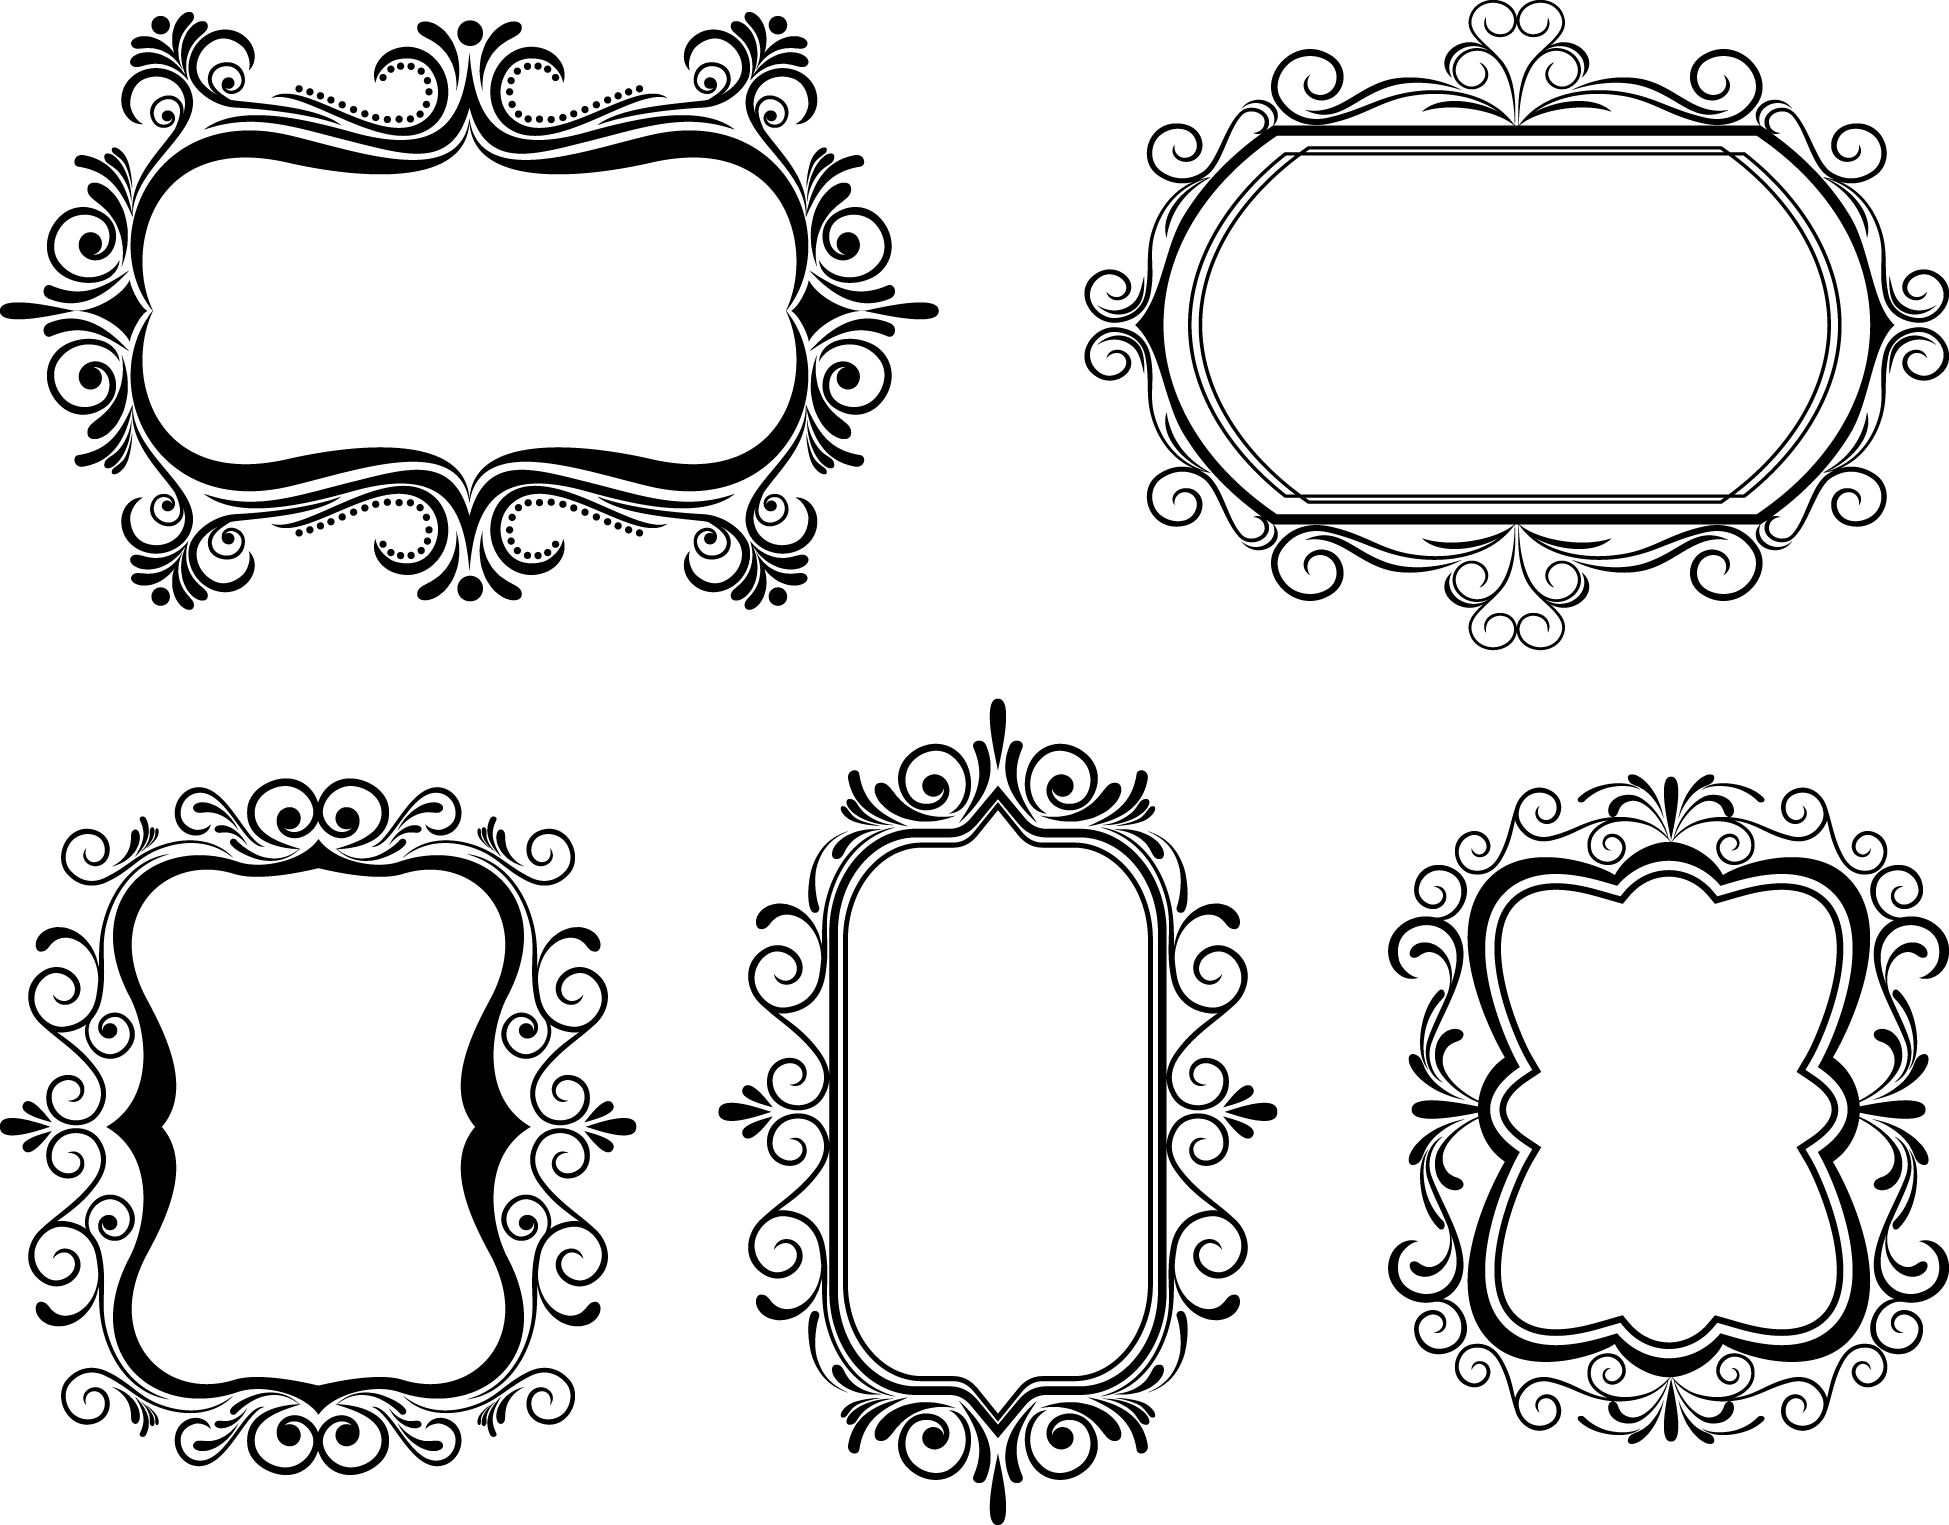 free vector frames and borders hd images 3 hd wallpapers